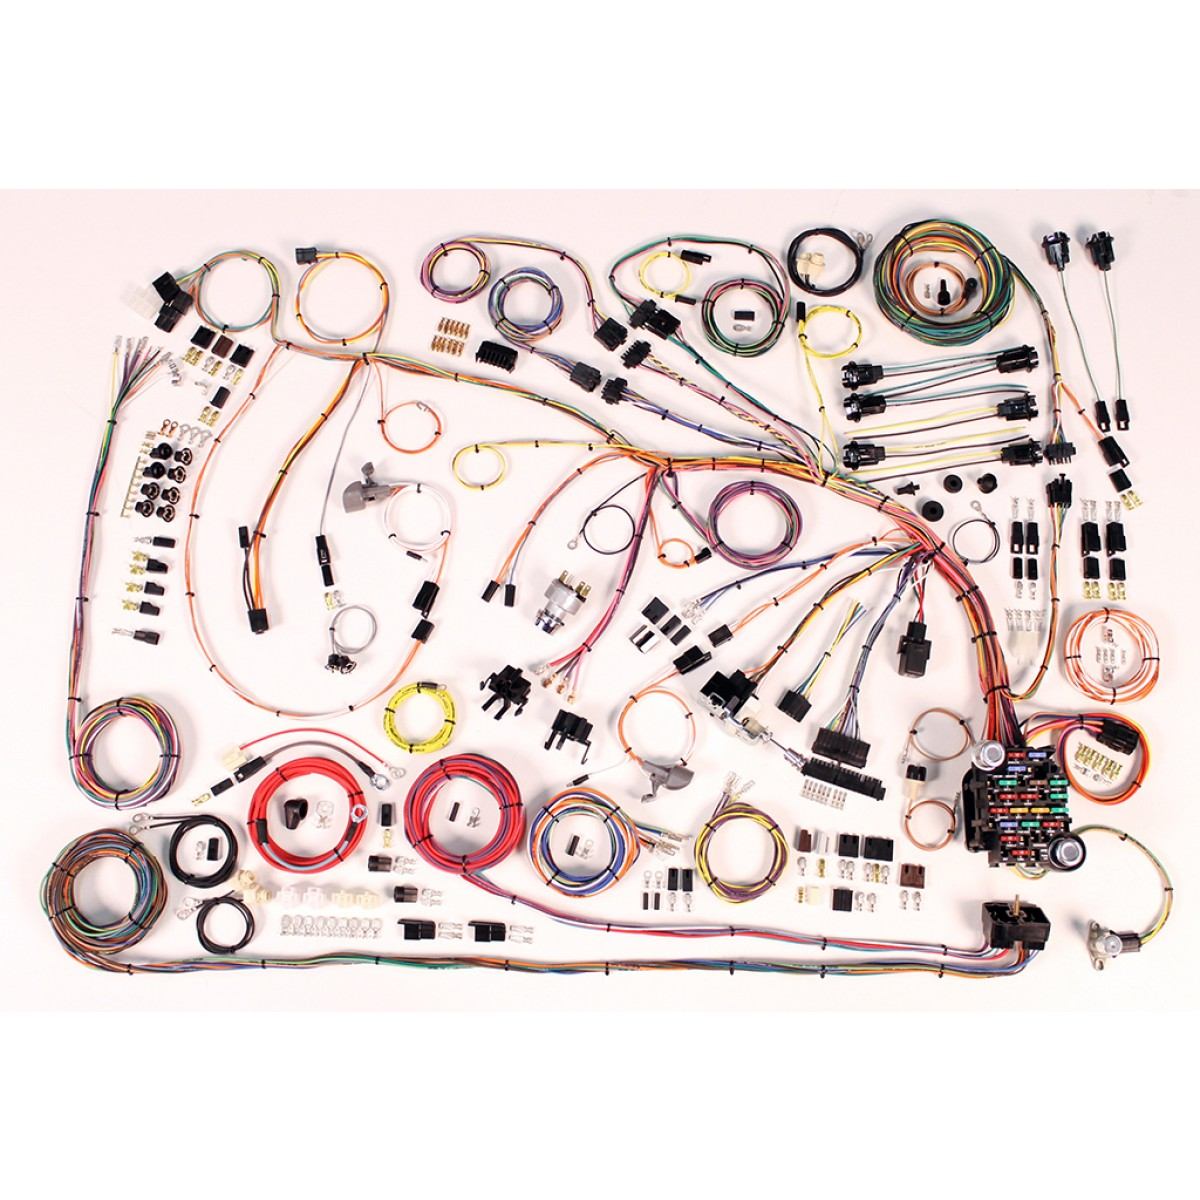 hight resolution of 1966 1968 impala wire harness complete wiring harness kit 19661966 caprice wiring harness 2